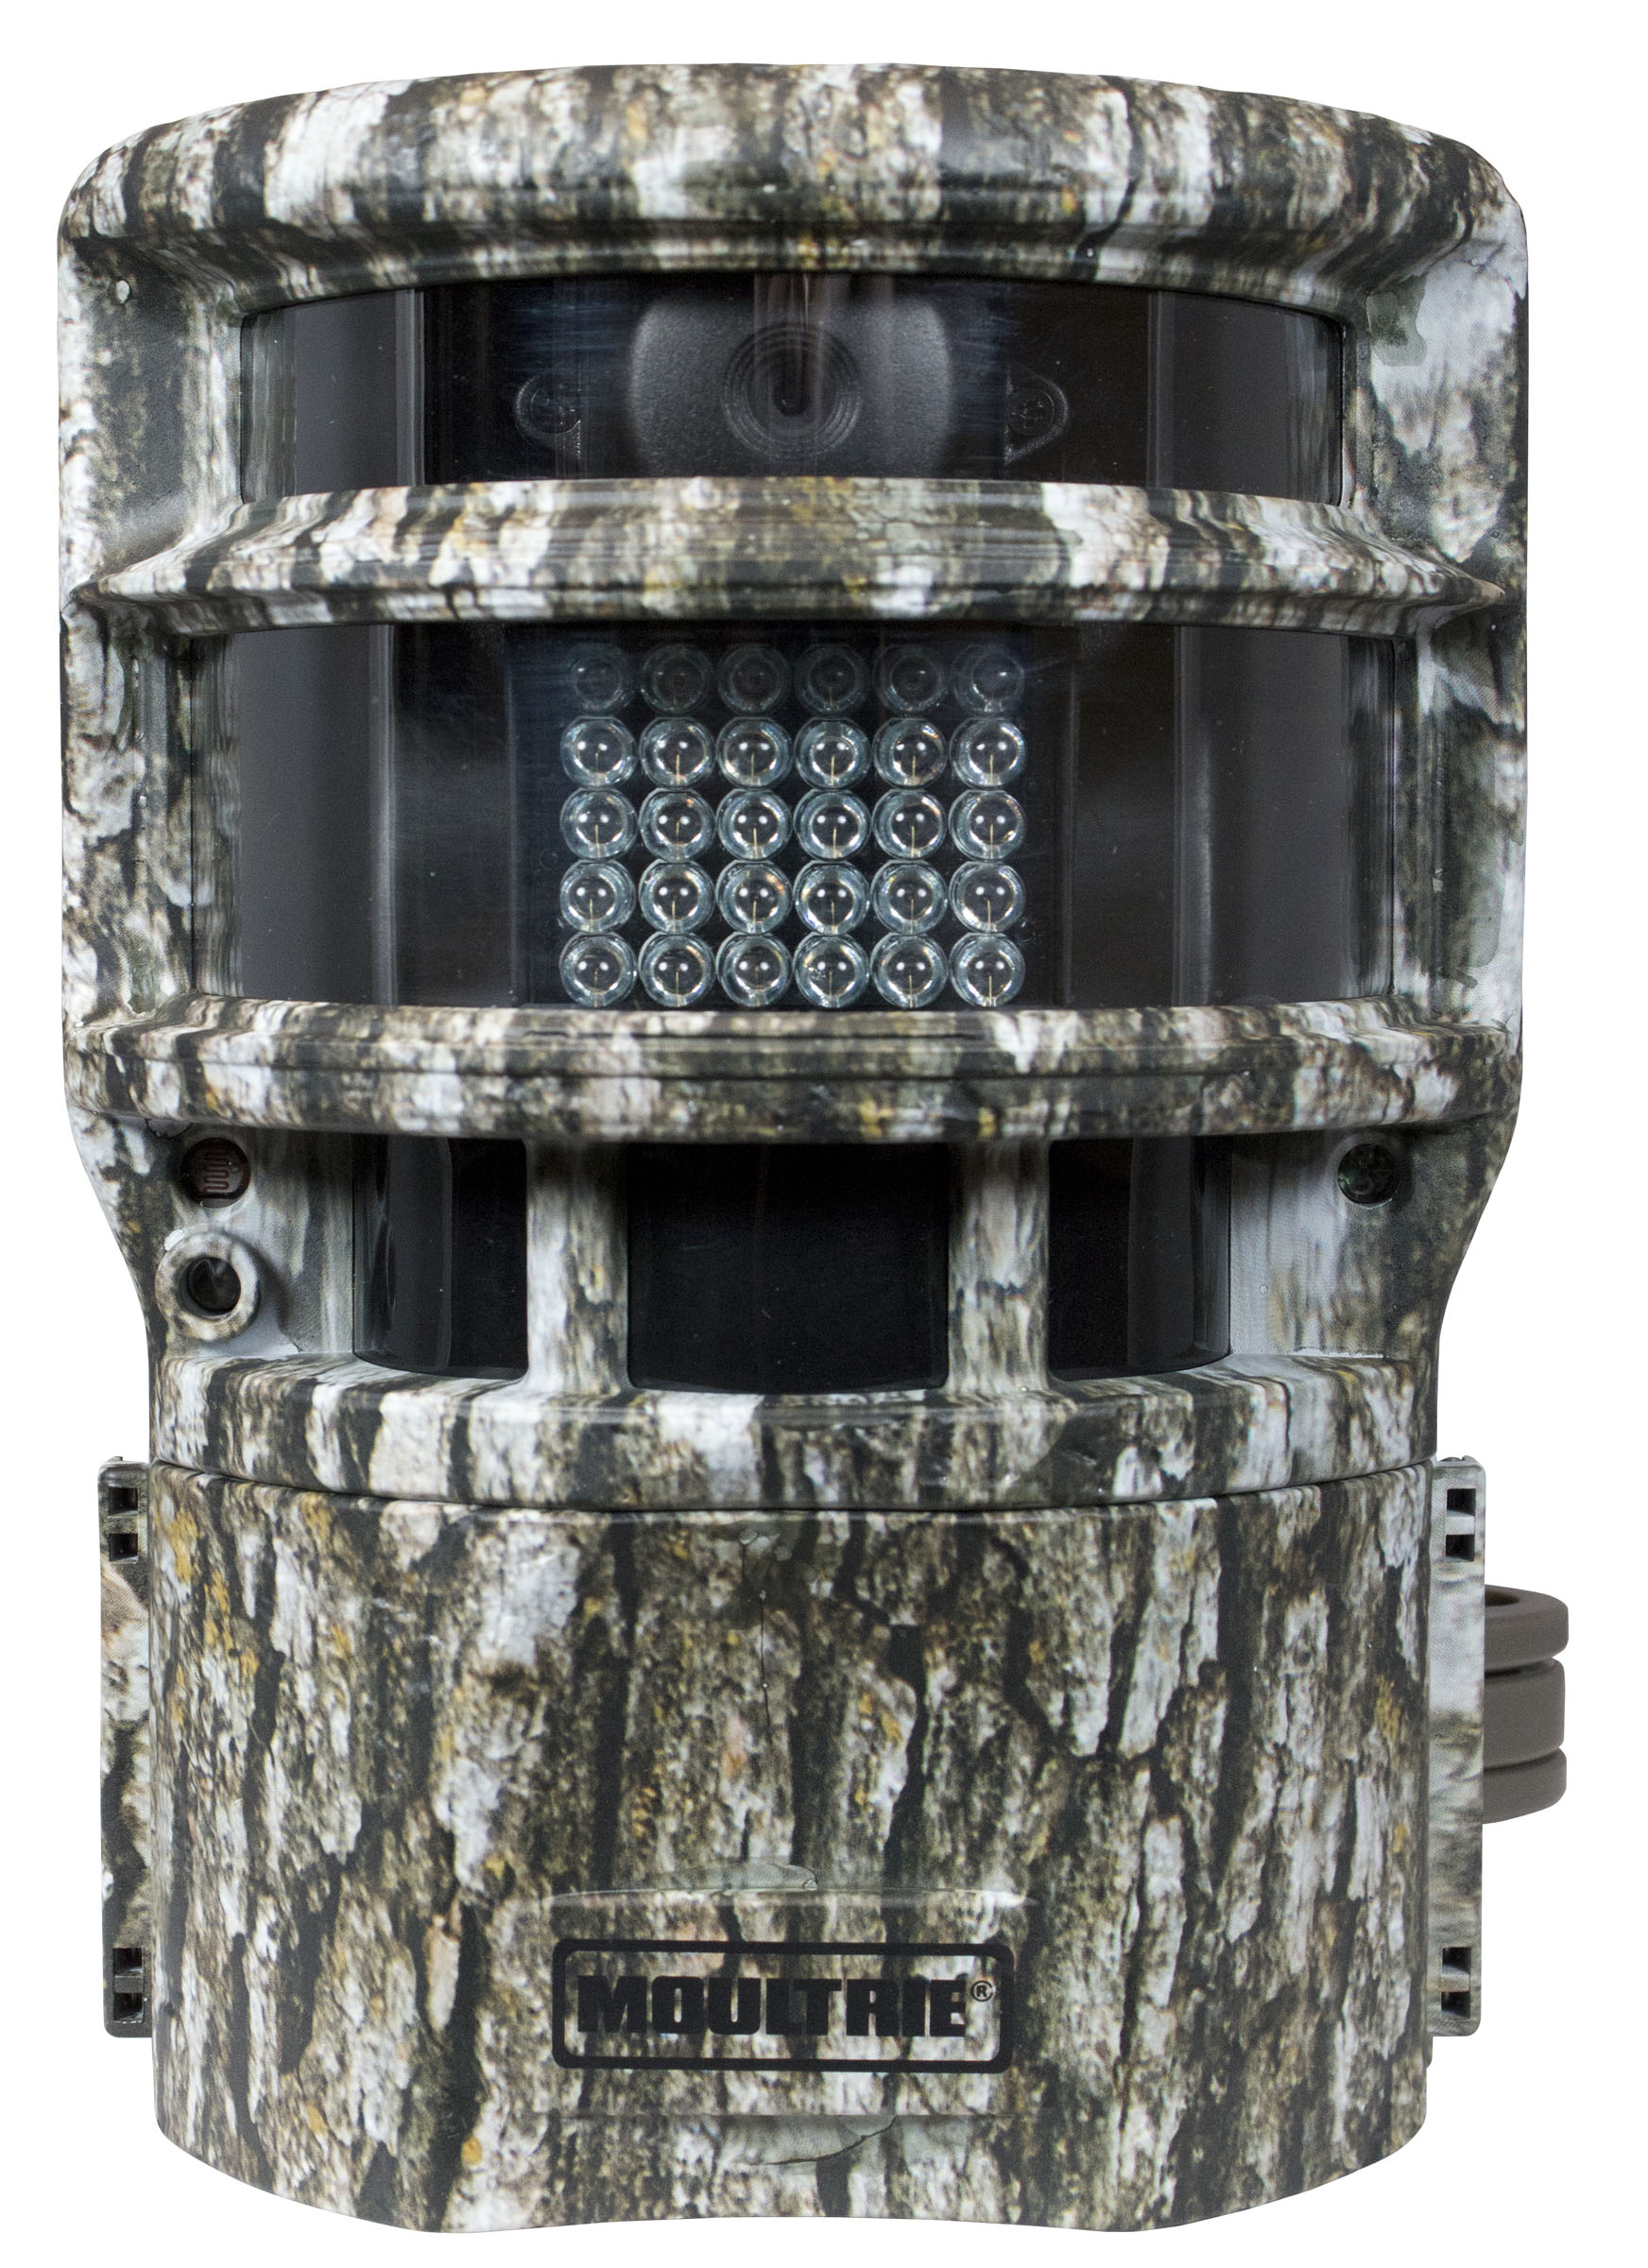 The Moultrie Panoramic 150 has a quiet, sliding lens that takes images with a wide field of view day or night. It's a great camera for your hunting land or home security plans.